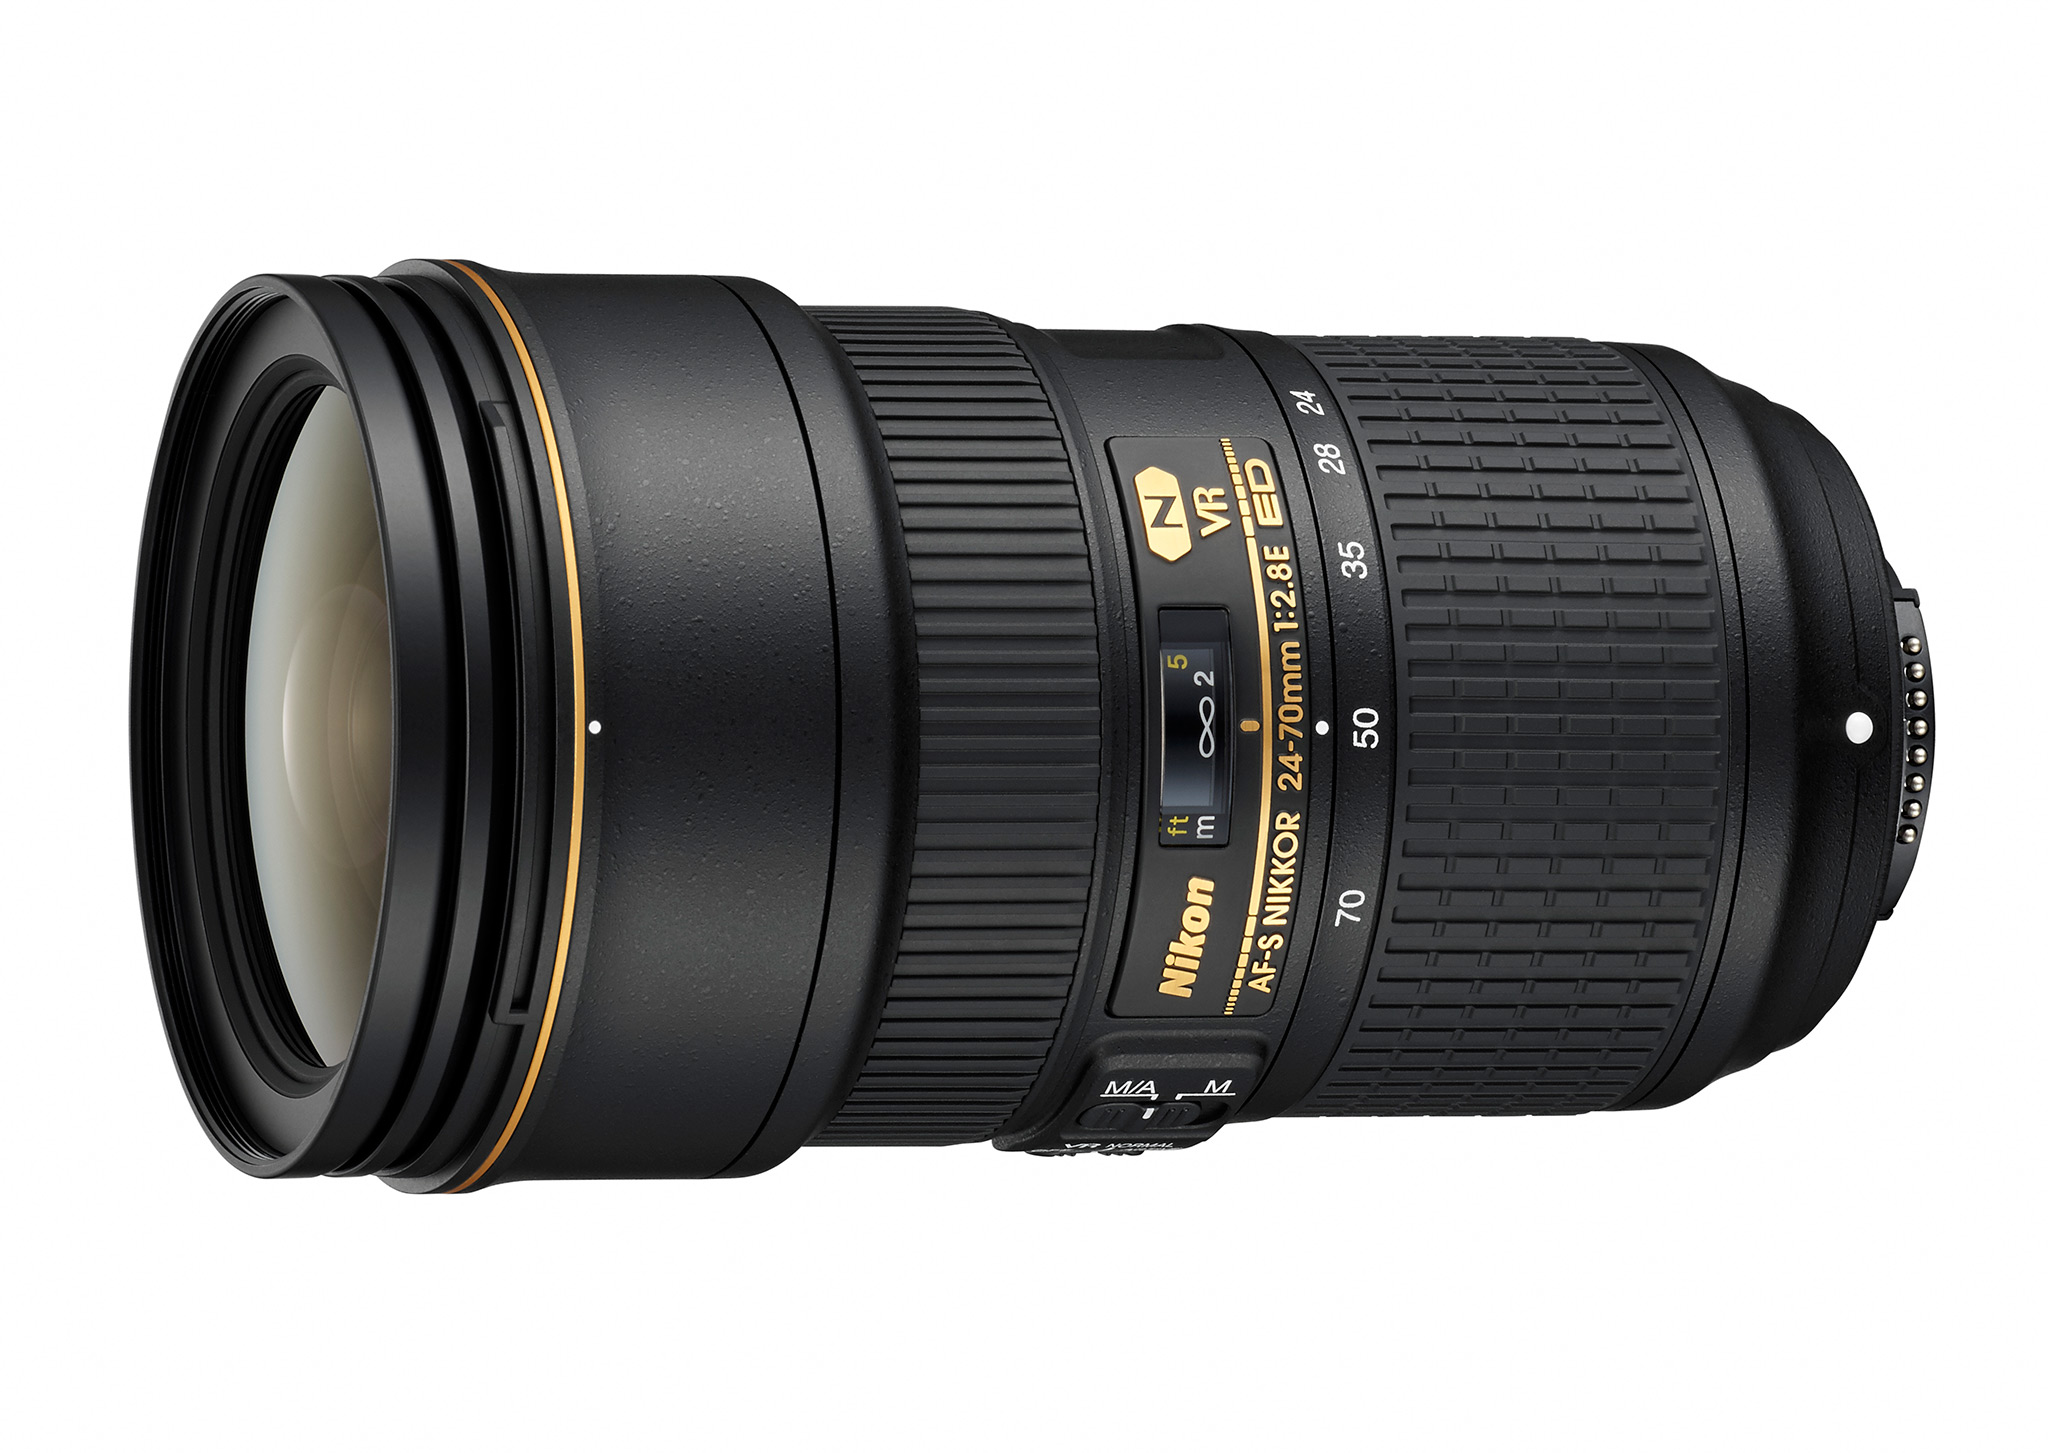 nikon-24-70mm-f2-8g-ed-vs-24-70mm-f2-8e-ed-vr-specifications-comparison